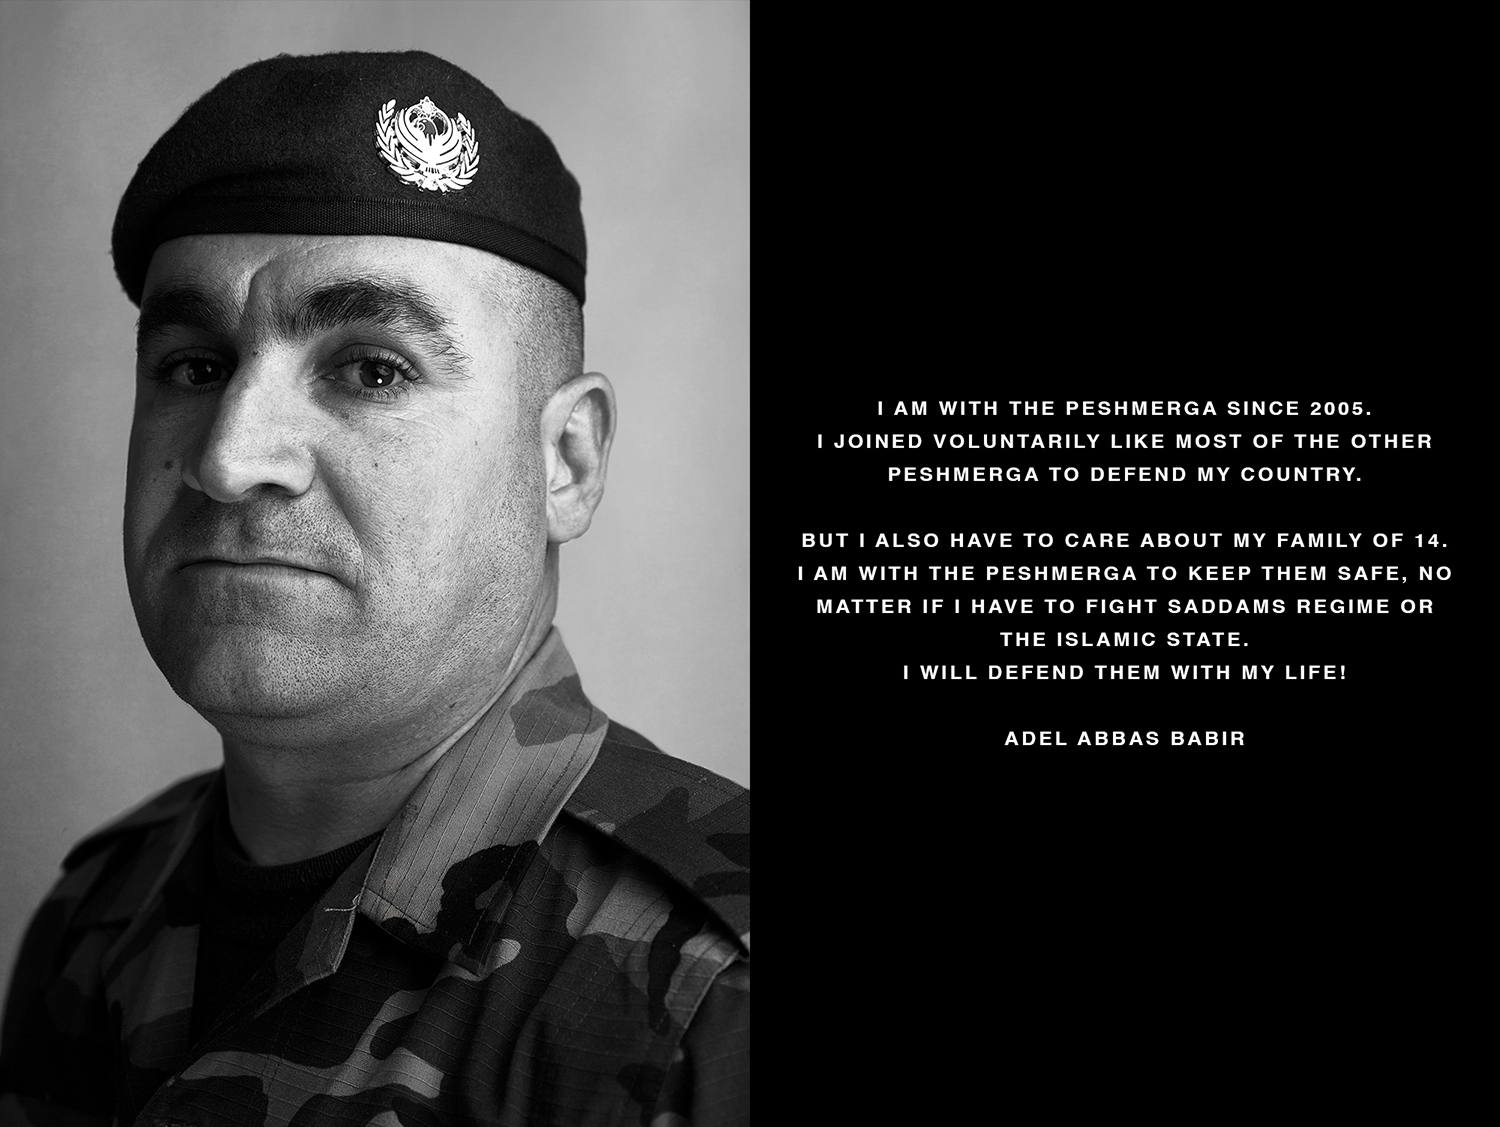 Portrait and Interview of a kurdish Peshmerga soldier